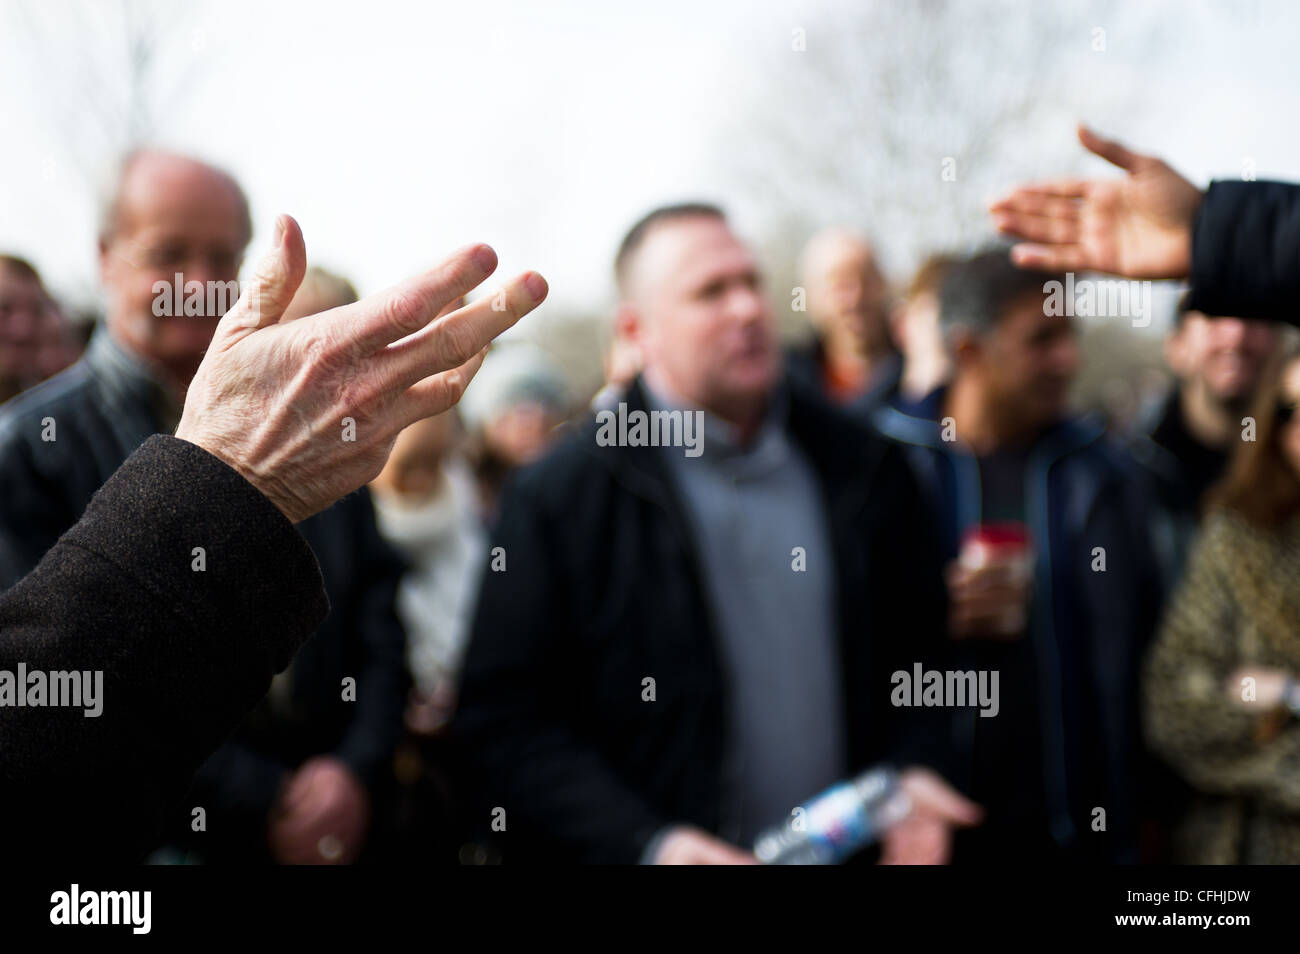 People making gestures at Speakers Corner in London - Stock Image